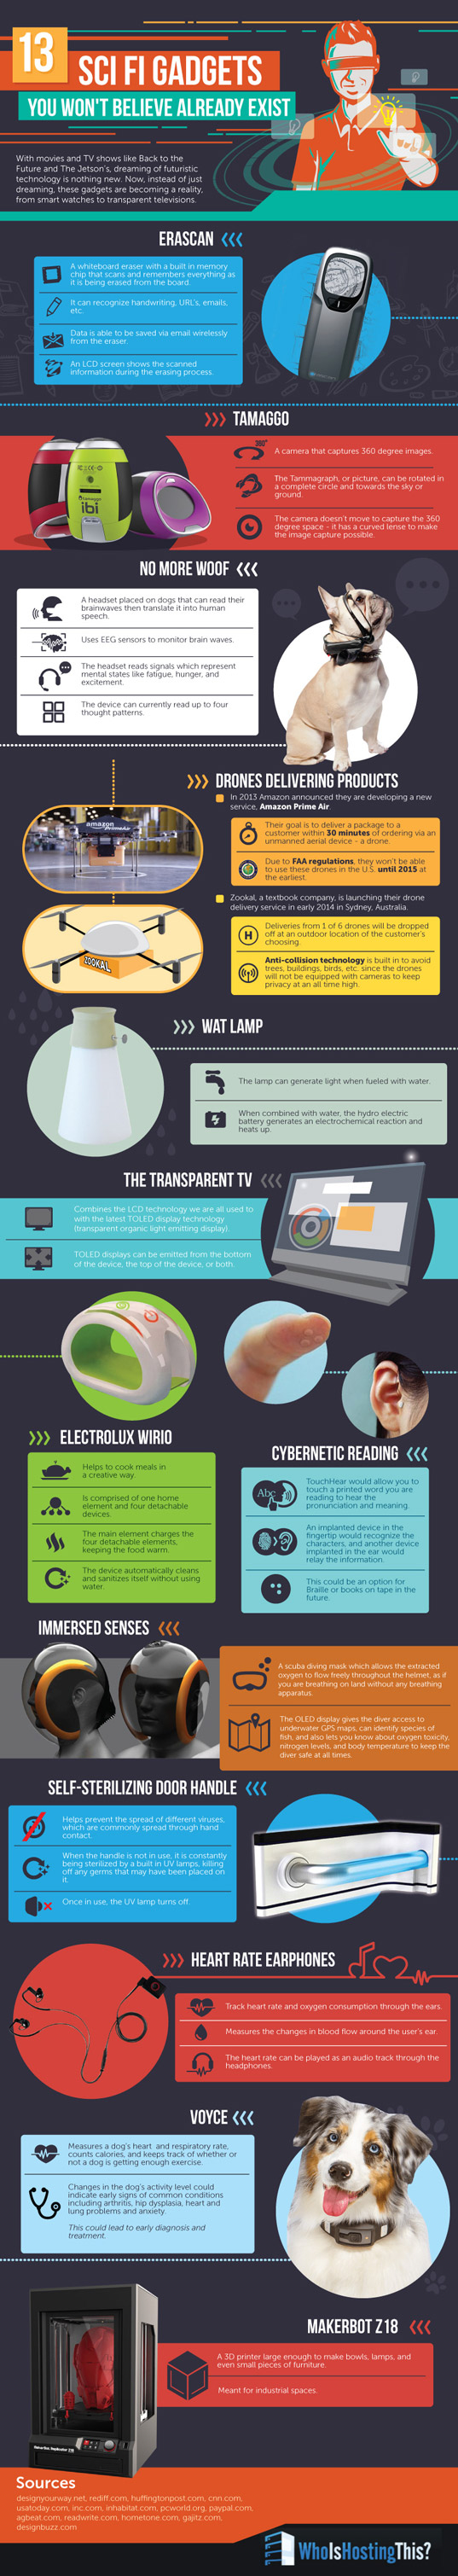 gagdets, green gadgets, eco gadgets, green technology, sustainable technology, sci-fi gadgets, science fiction gadgets, green design, sustainable design, infographic